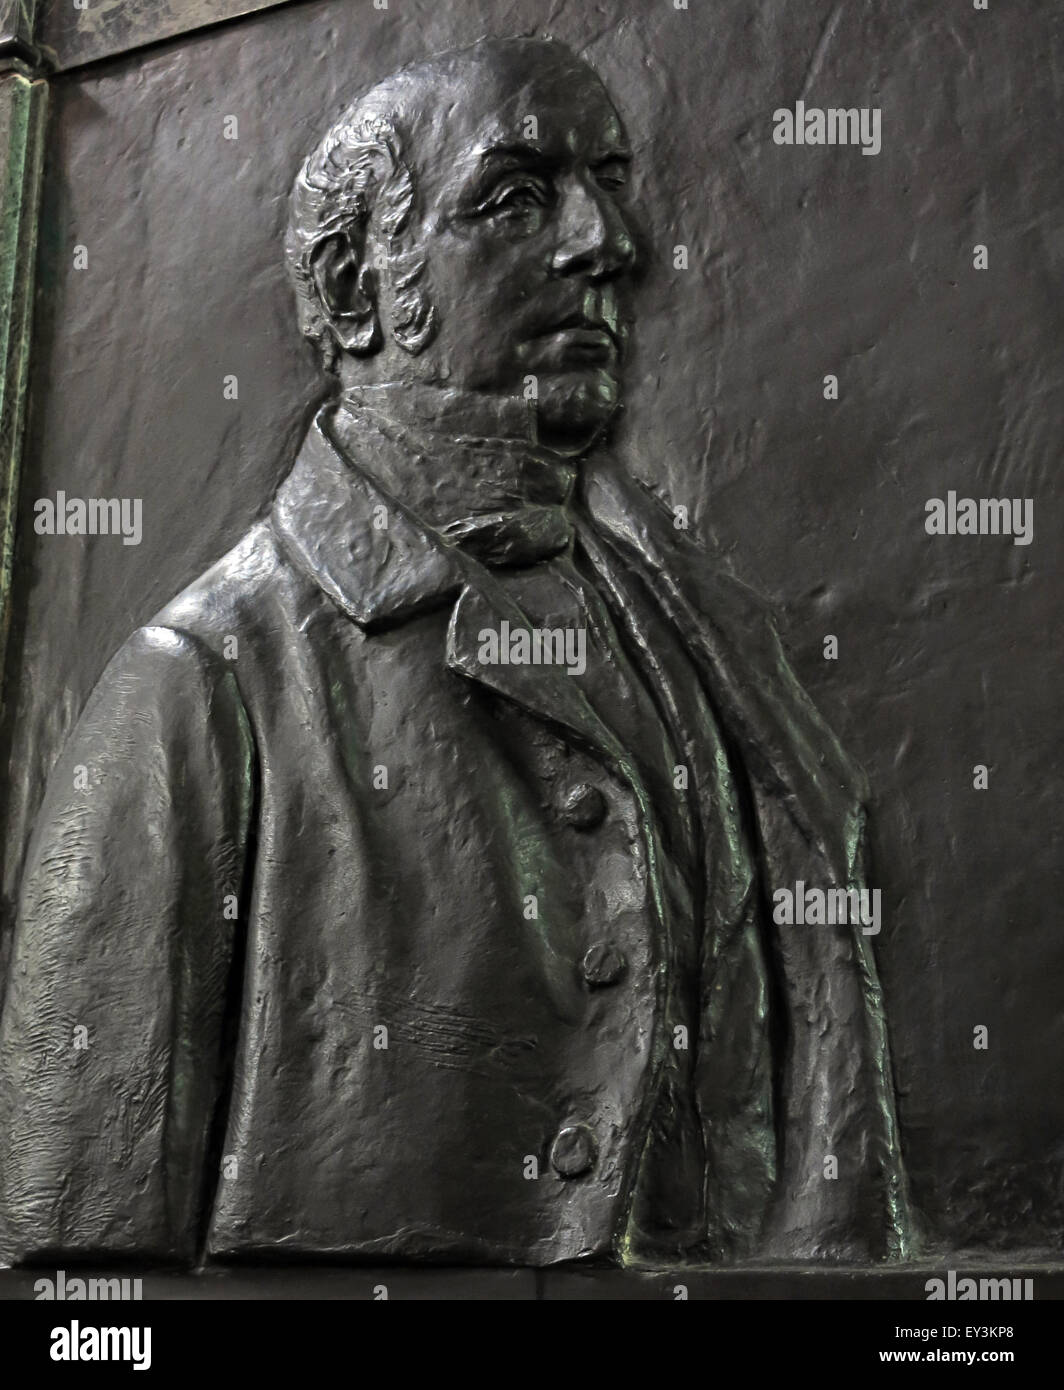 1860 Sir James Graham by John Tweed,He was an MP,First Lord of the Admiralty,Home Secretayr. Freemason,Provincial,Grandmaster,Carlisle,Cathedral,United Kingdom,Church,bronze,sculpture,statue,GoTonySmith,7 Abbey St,Carlisle,Cumbria,England,UK - CA3 8TZ,CA3 8TZ,Buy Pictures of,Buy Images Of